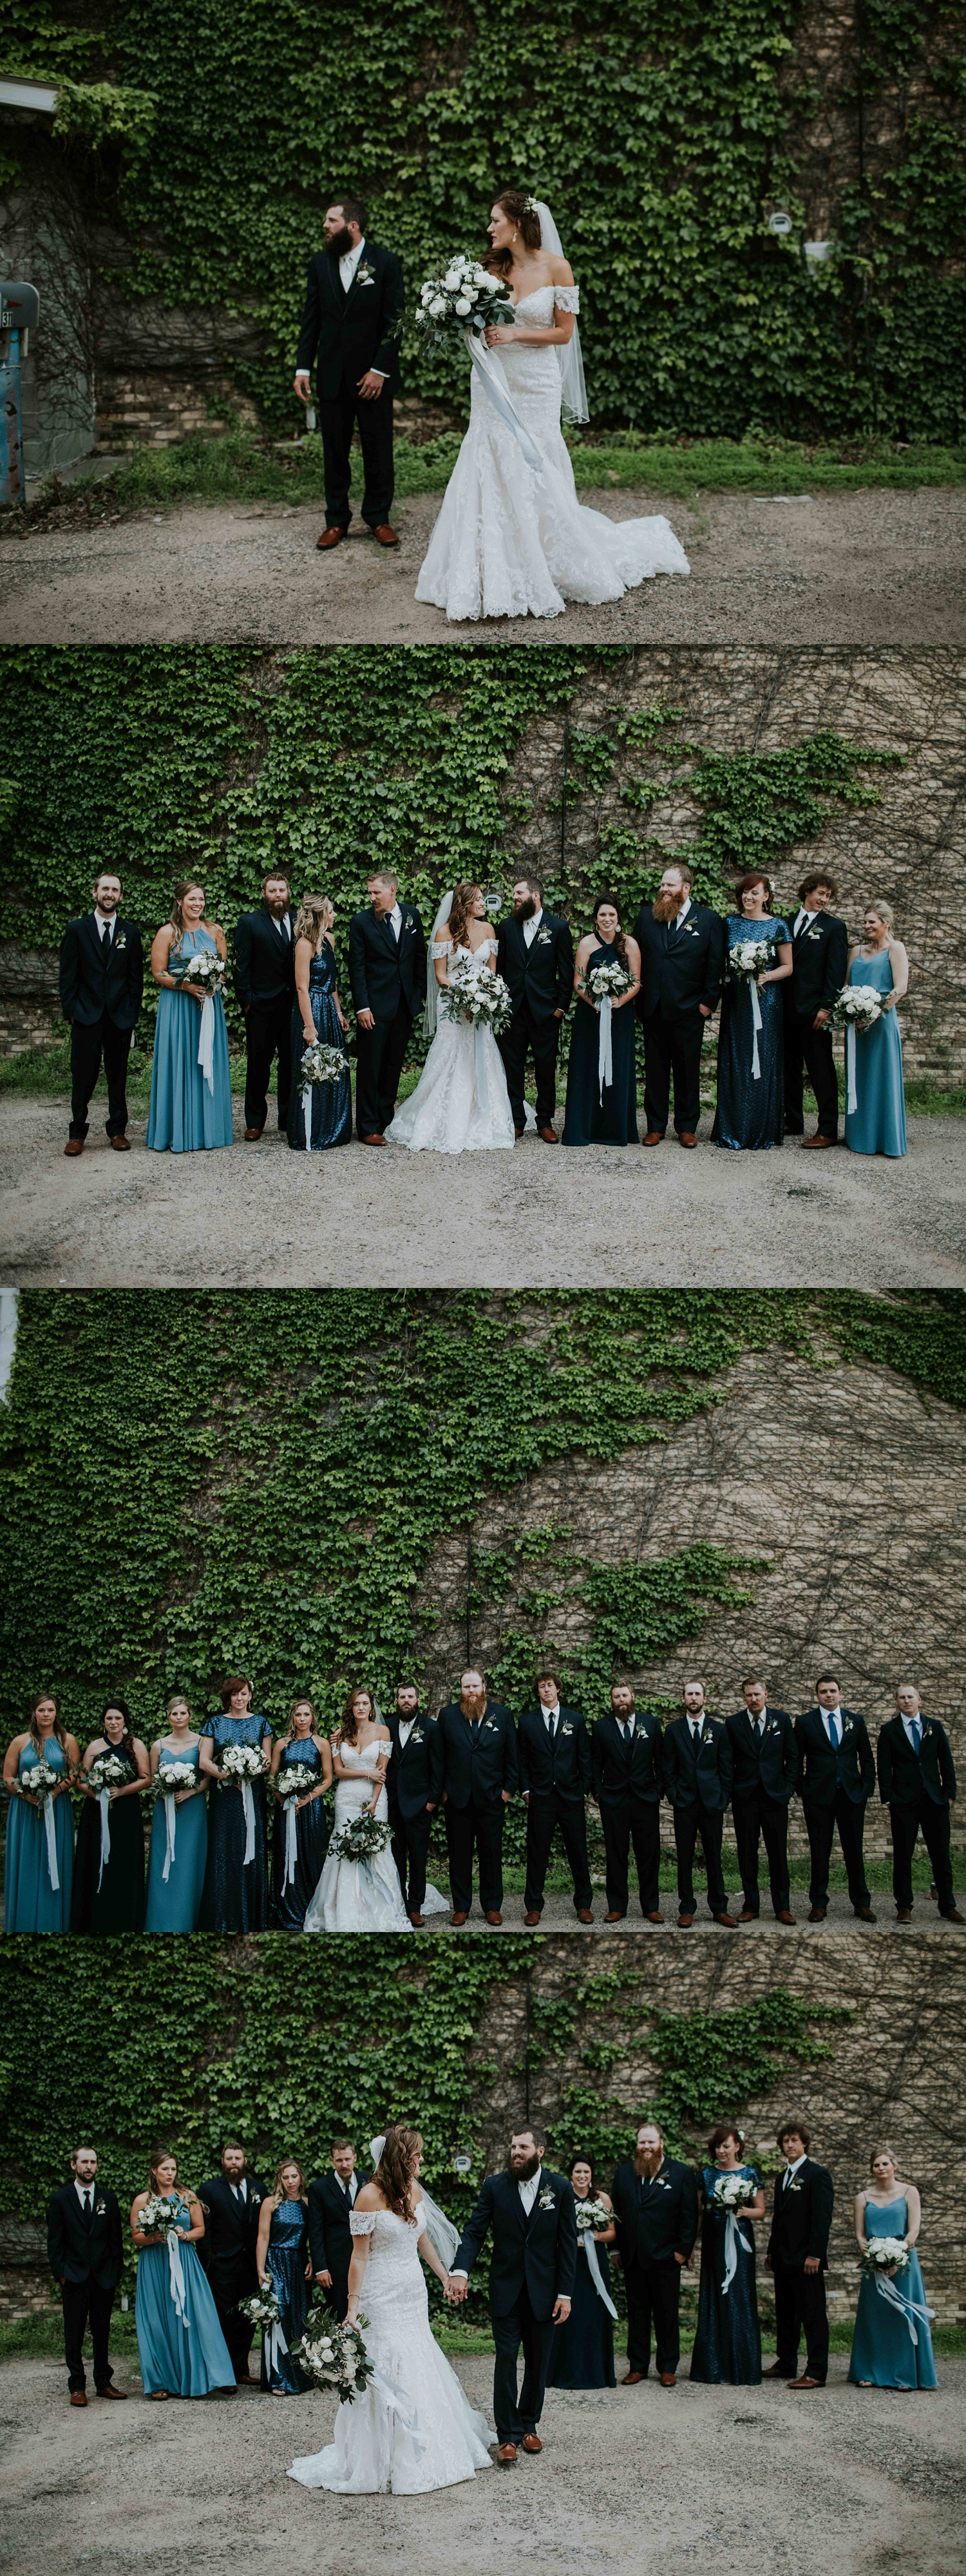 Bulls Eye Country Club Wedding Photographer Wisconsin Rapids Chloe Ann Photography_0008.jpg